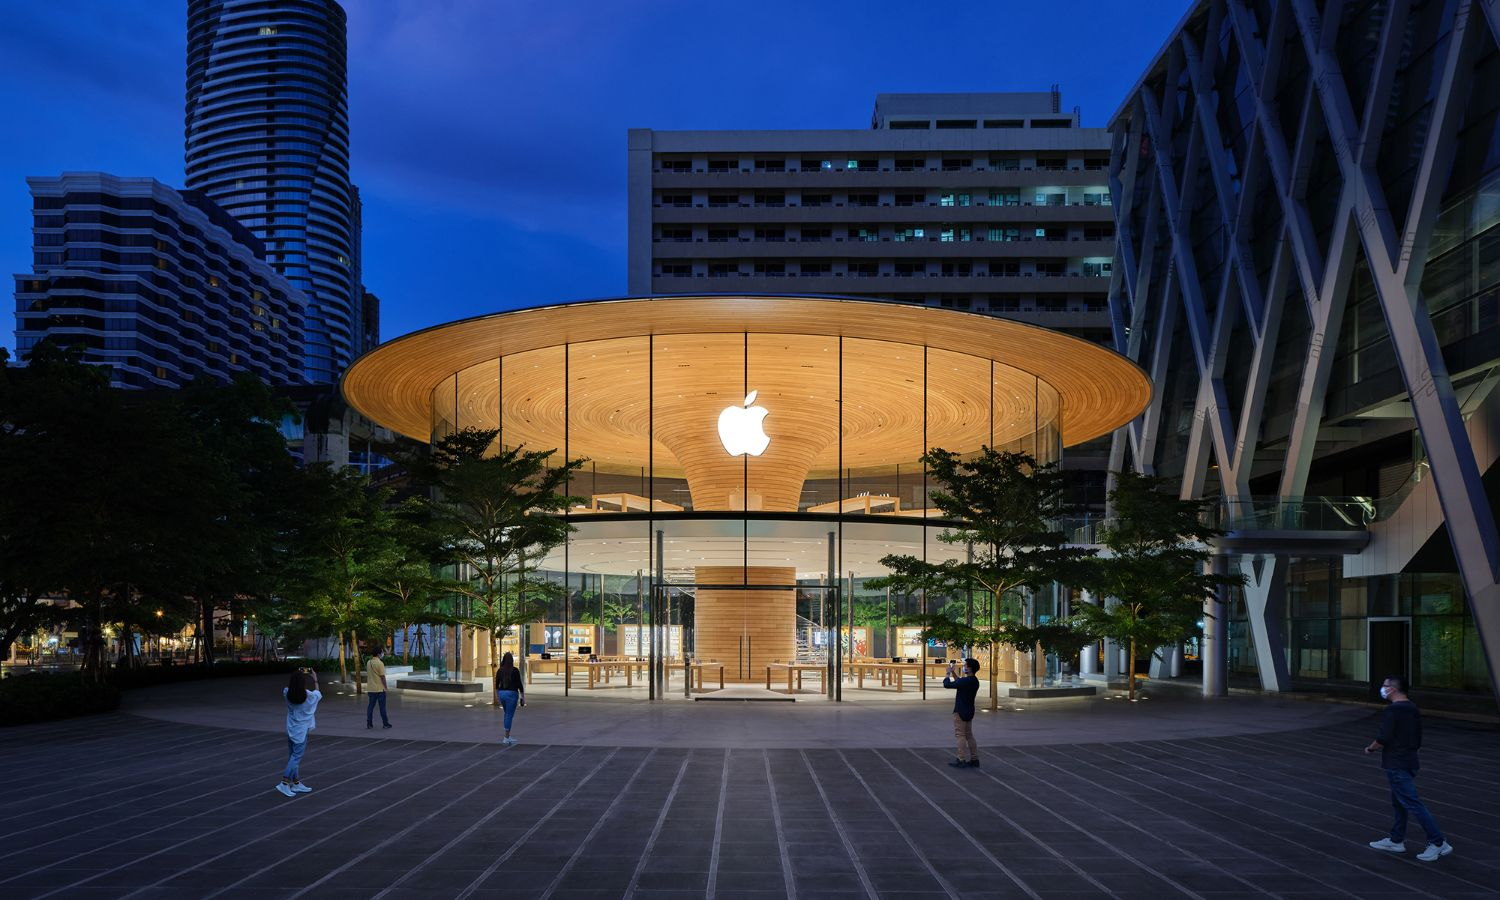 Apple Store Bangkok at night